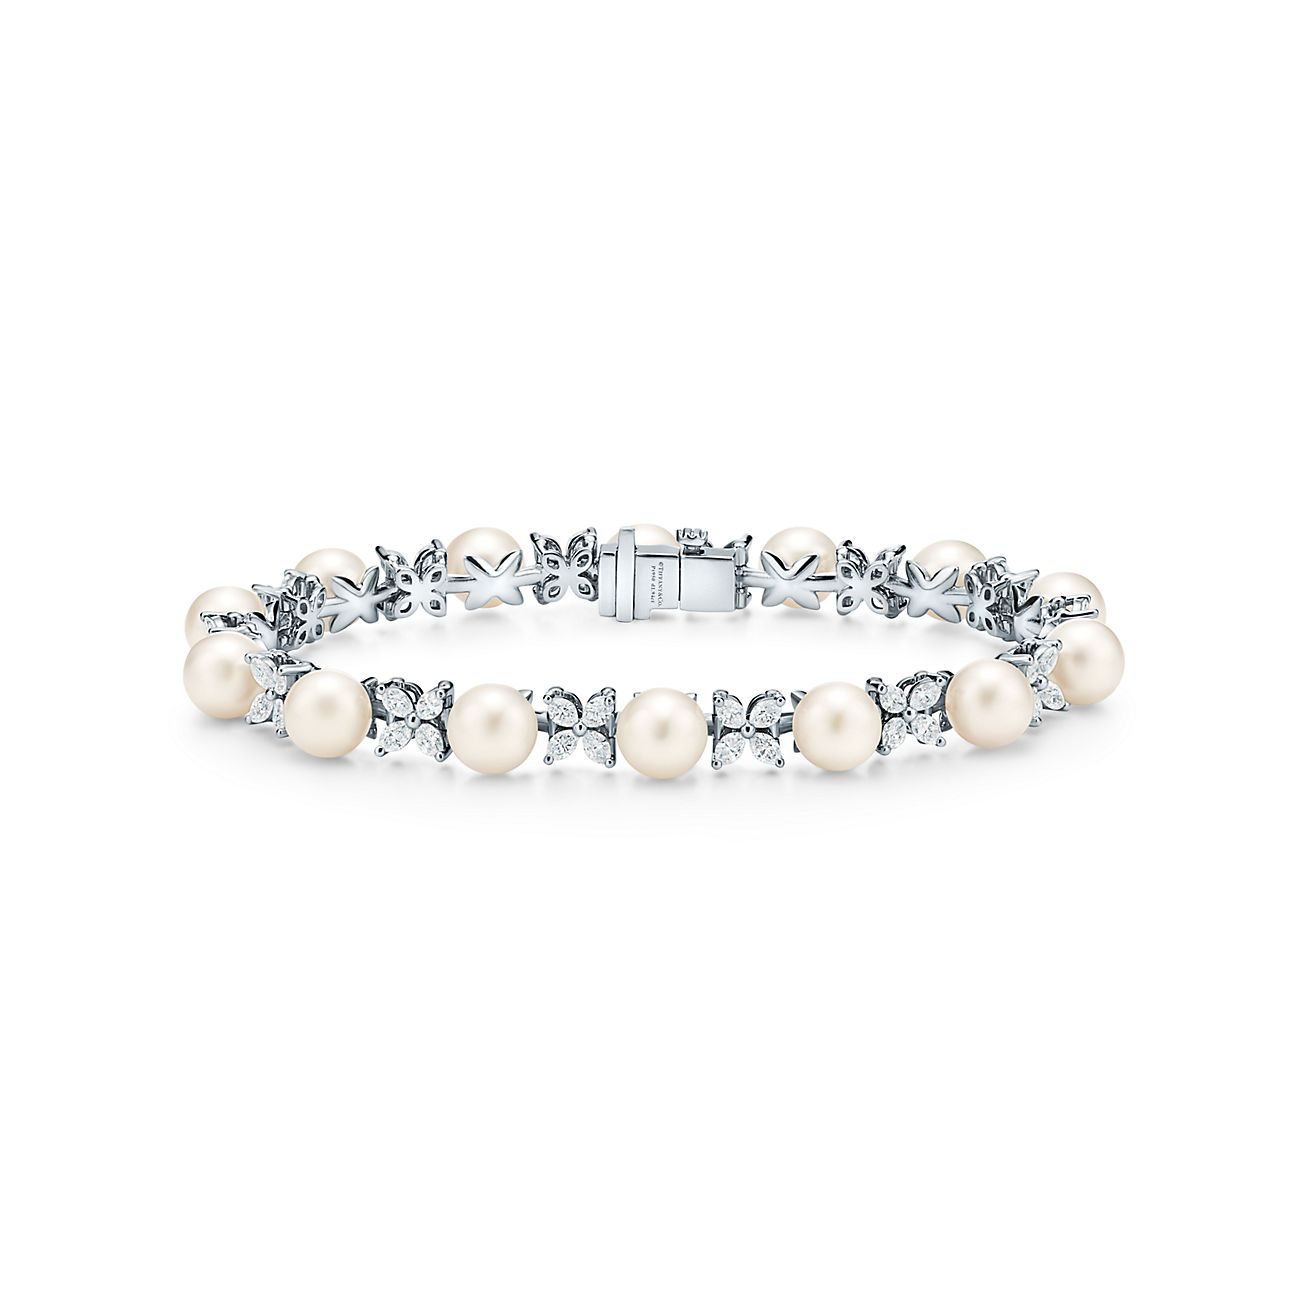 Tiffany Victoria Tennis Bracelet In Platinum With Diamonds And Pearls Tiffany Co